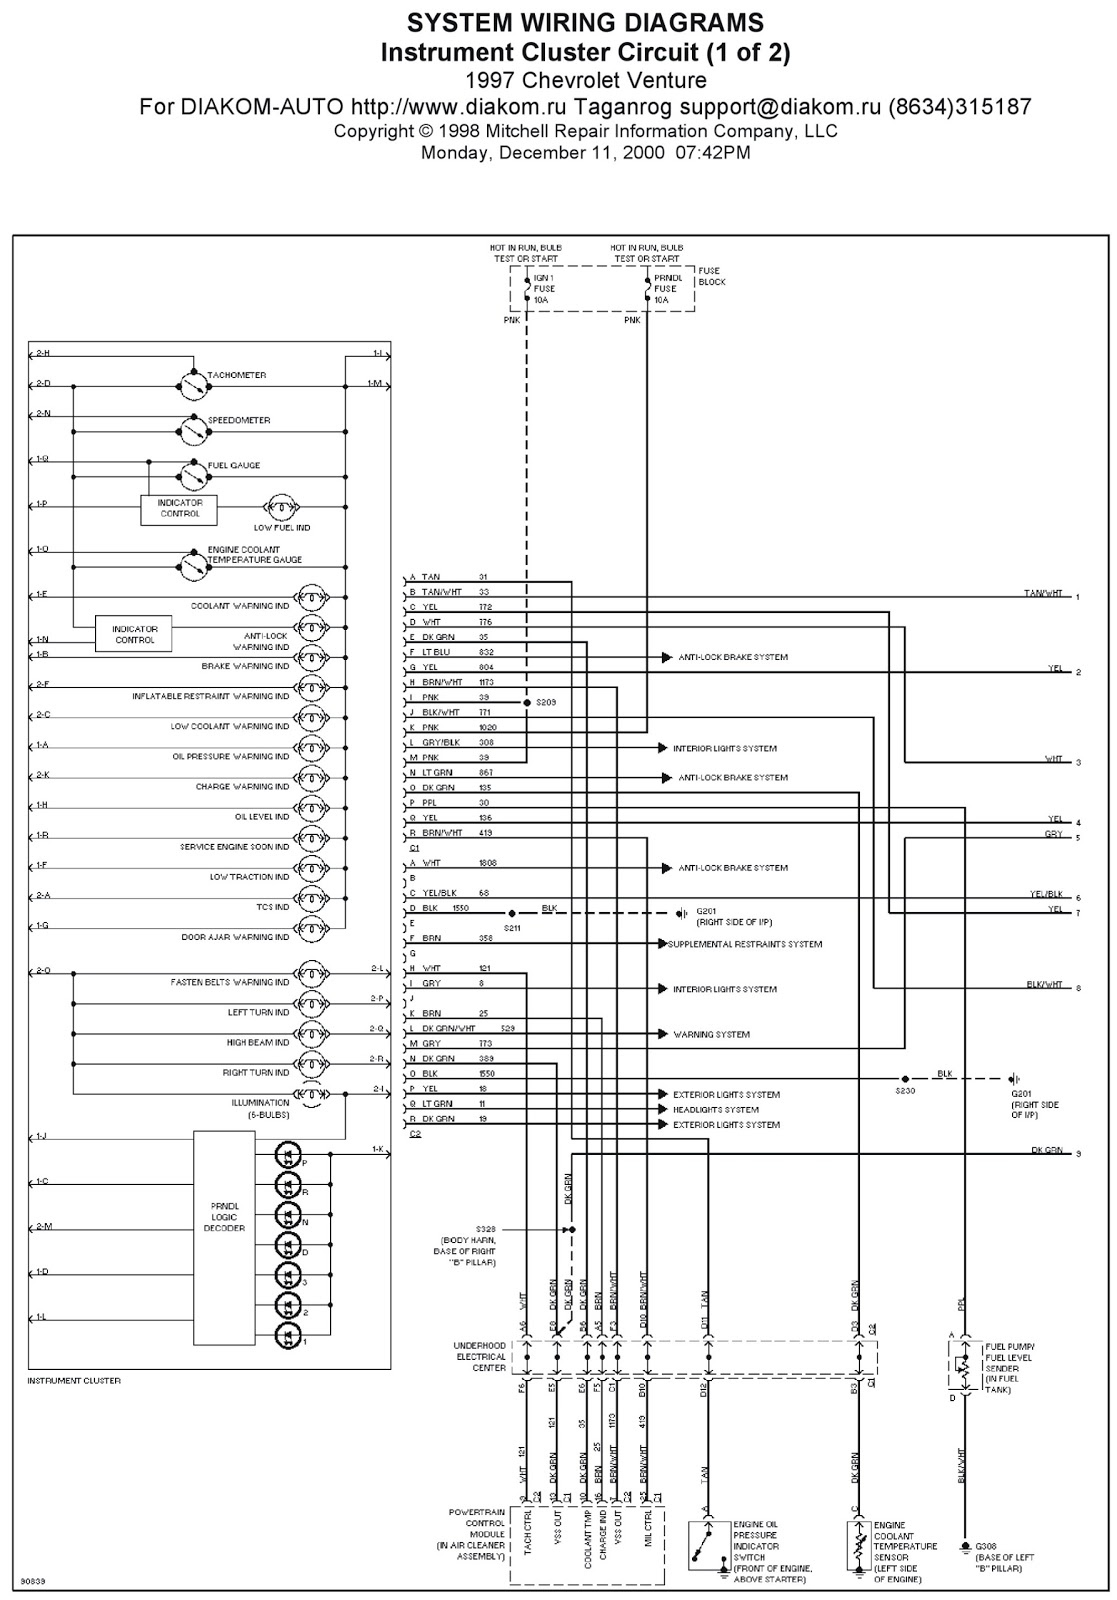 hight resolution of 1997 chevrolet venture instrument cluster circuit system wiring diagram part 1in the part two you will see the parts as follow electronic brake control